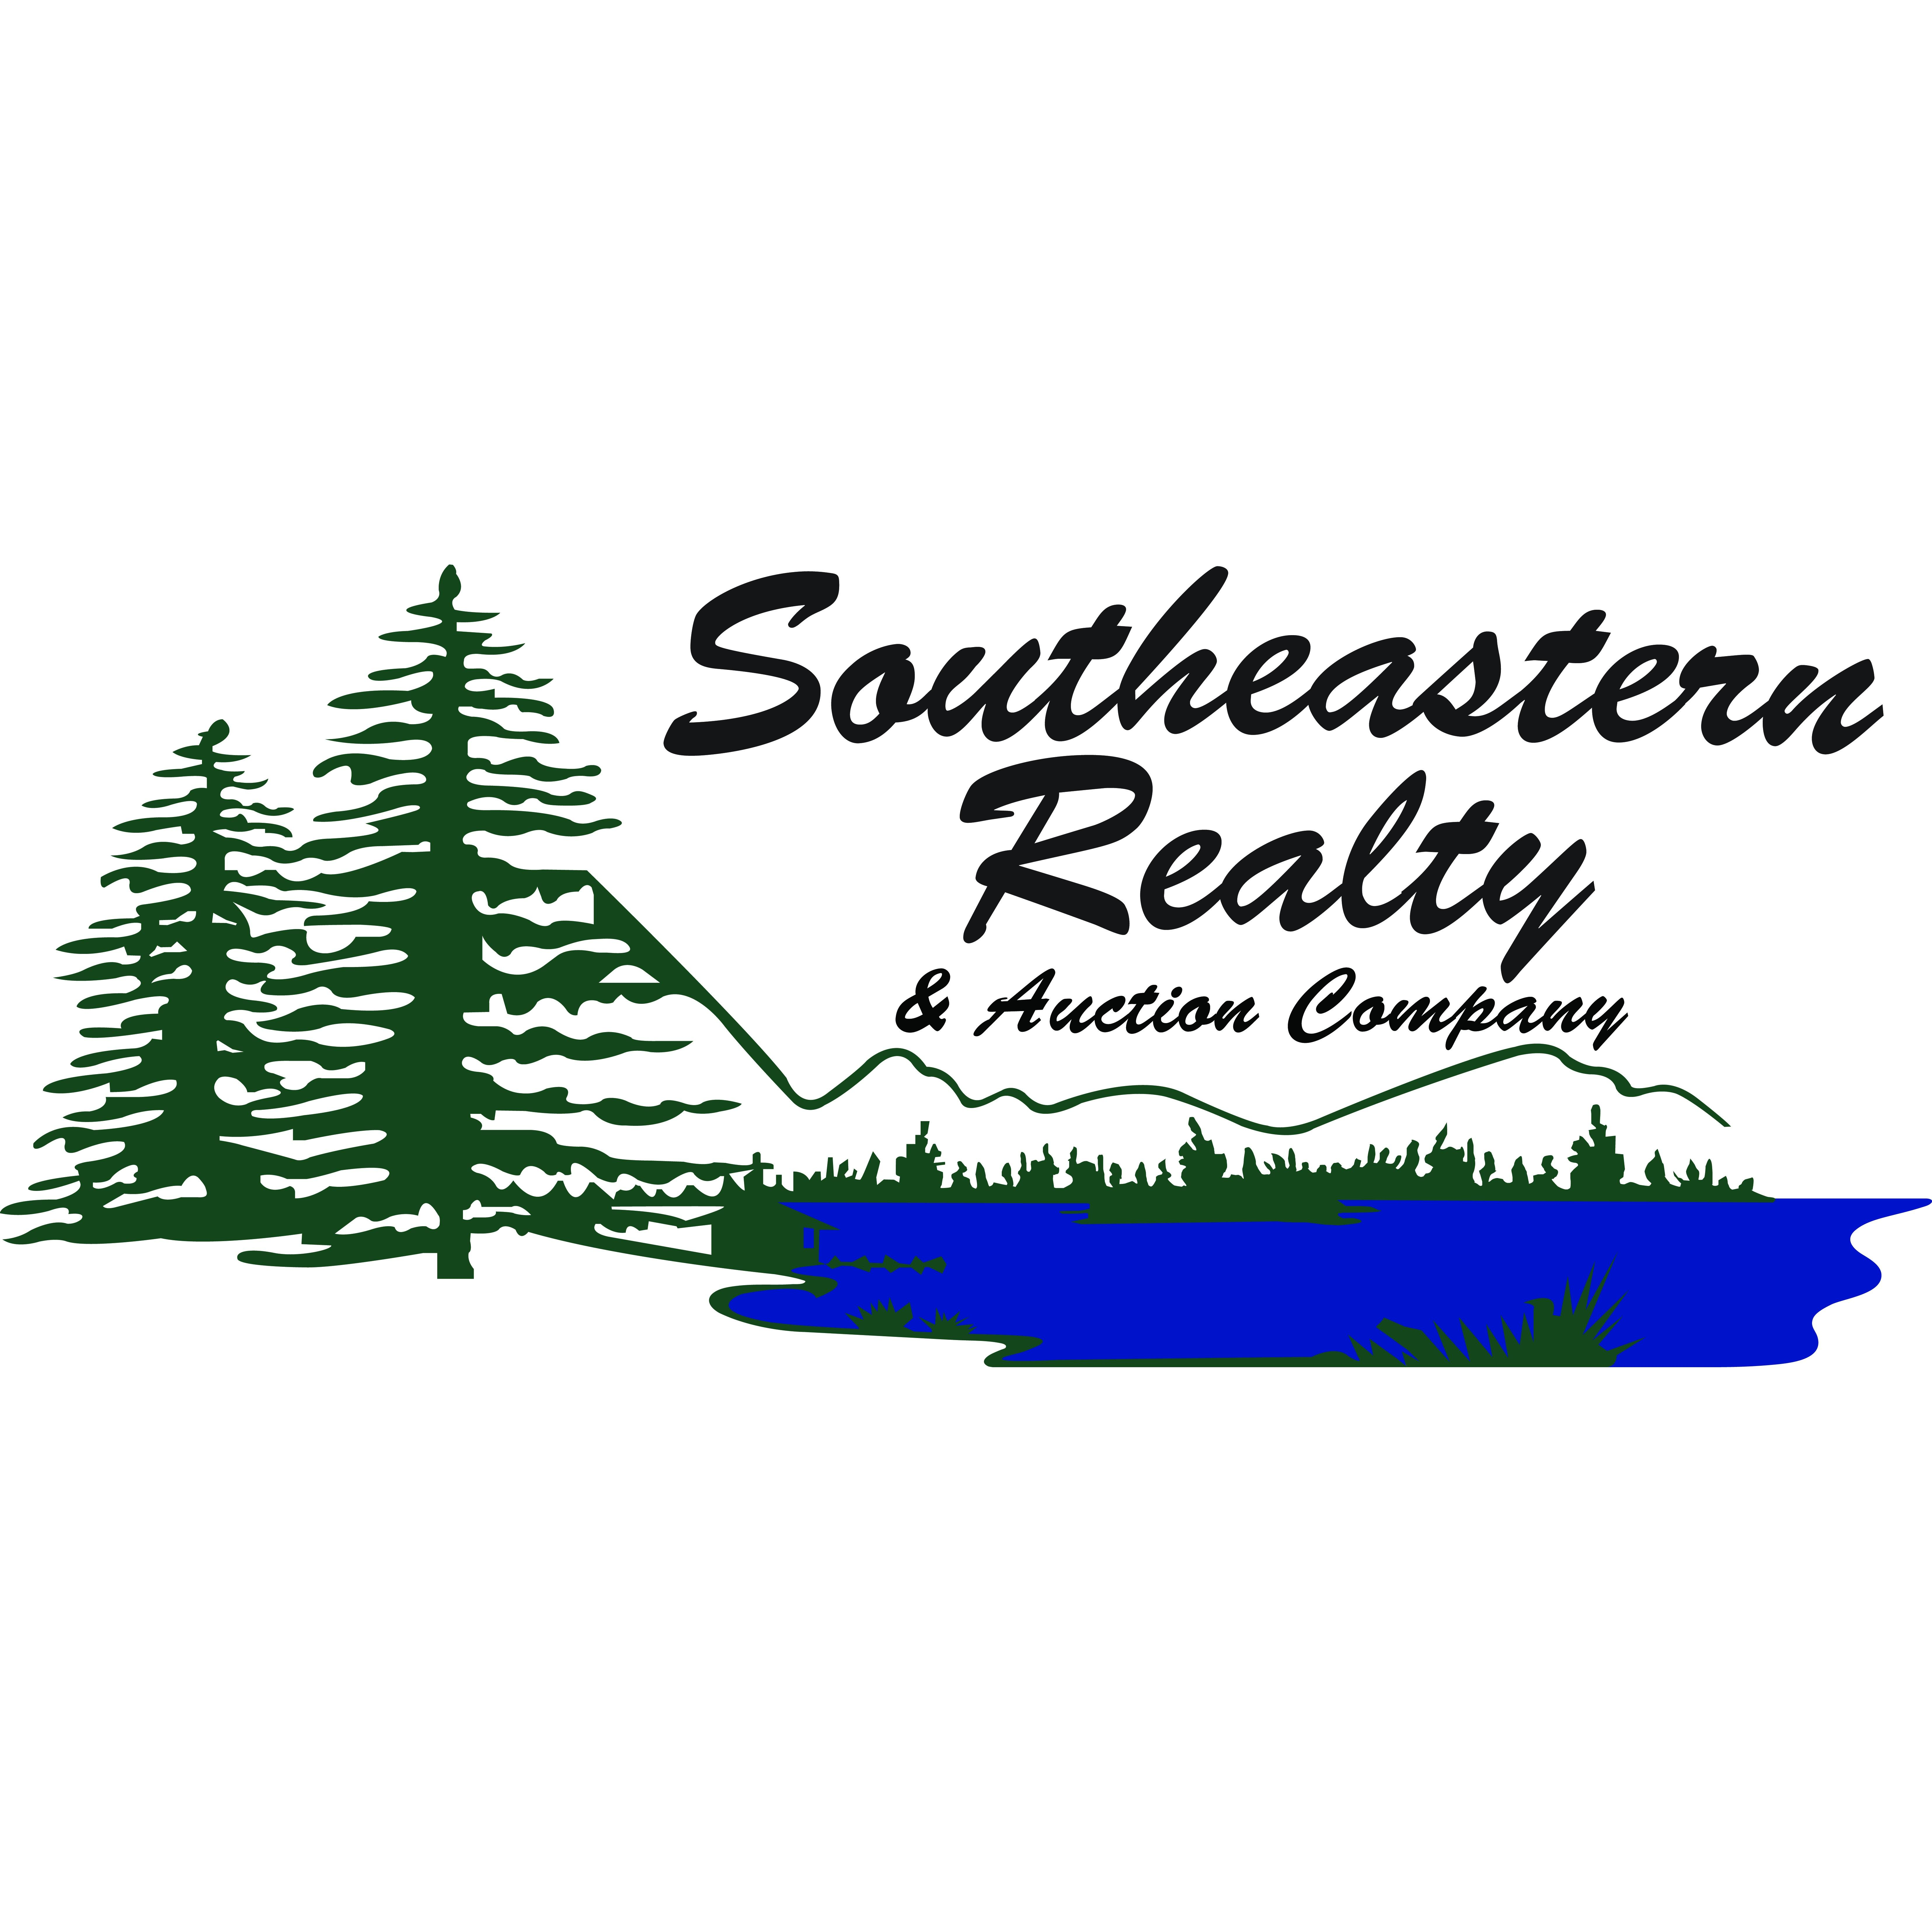 Southeastern Realty & Auction Company image 3